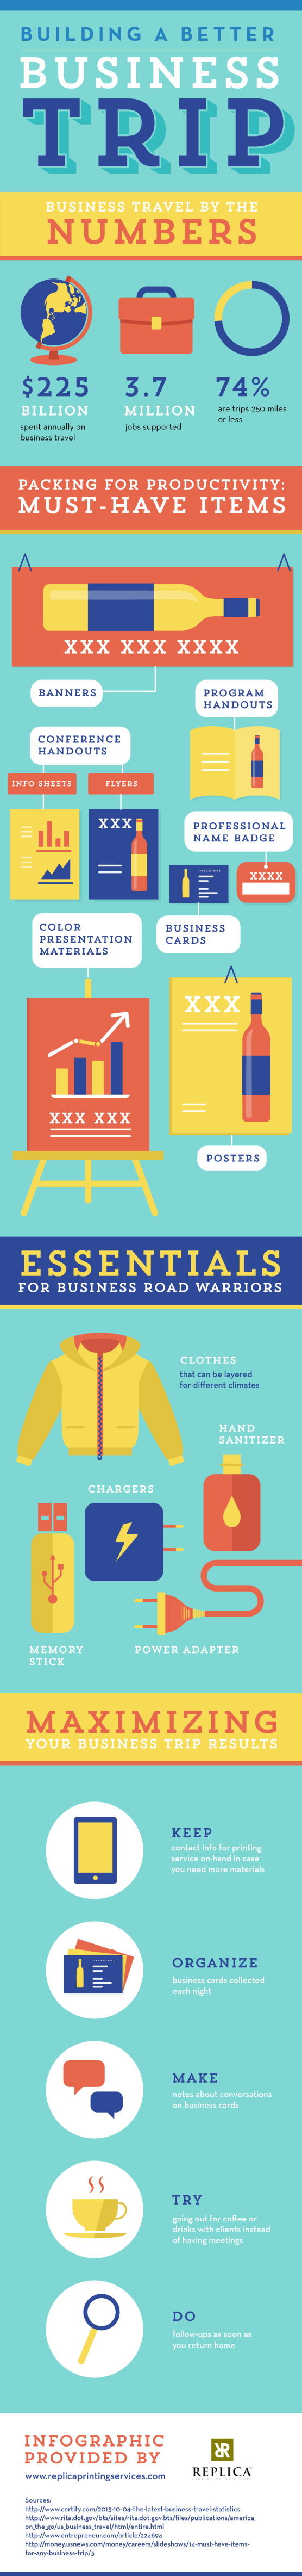 Infographic: Building a Better Business Trip